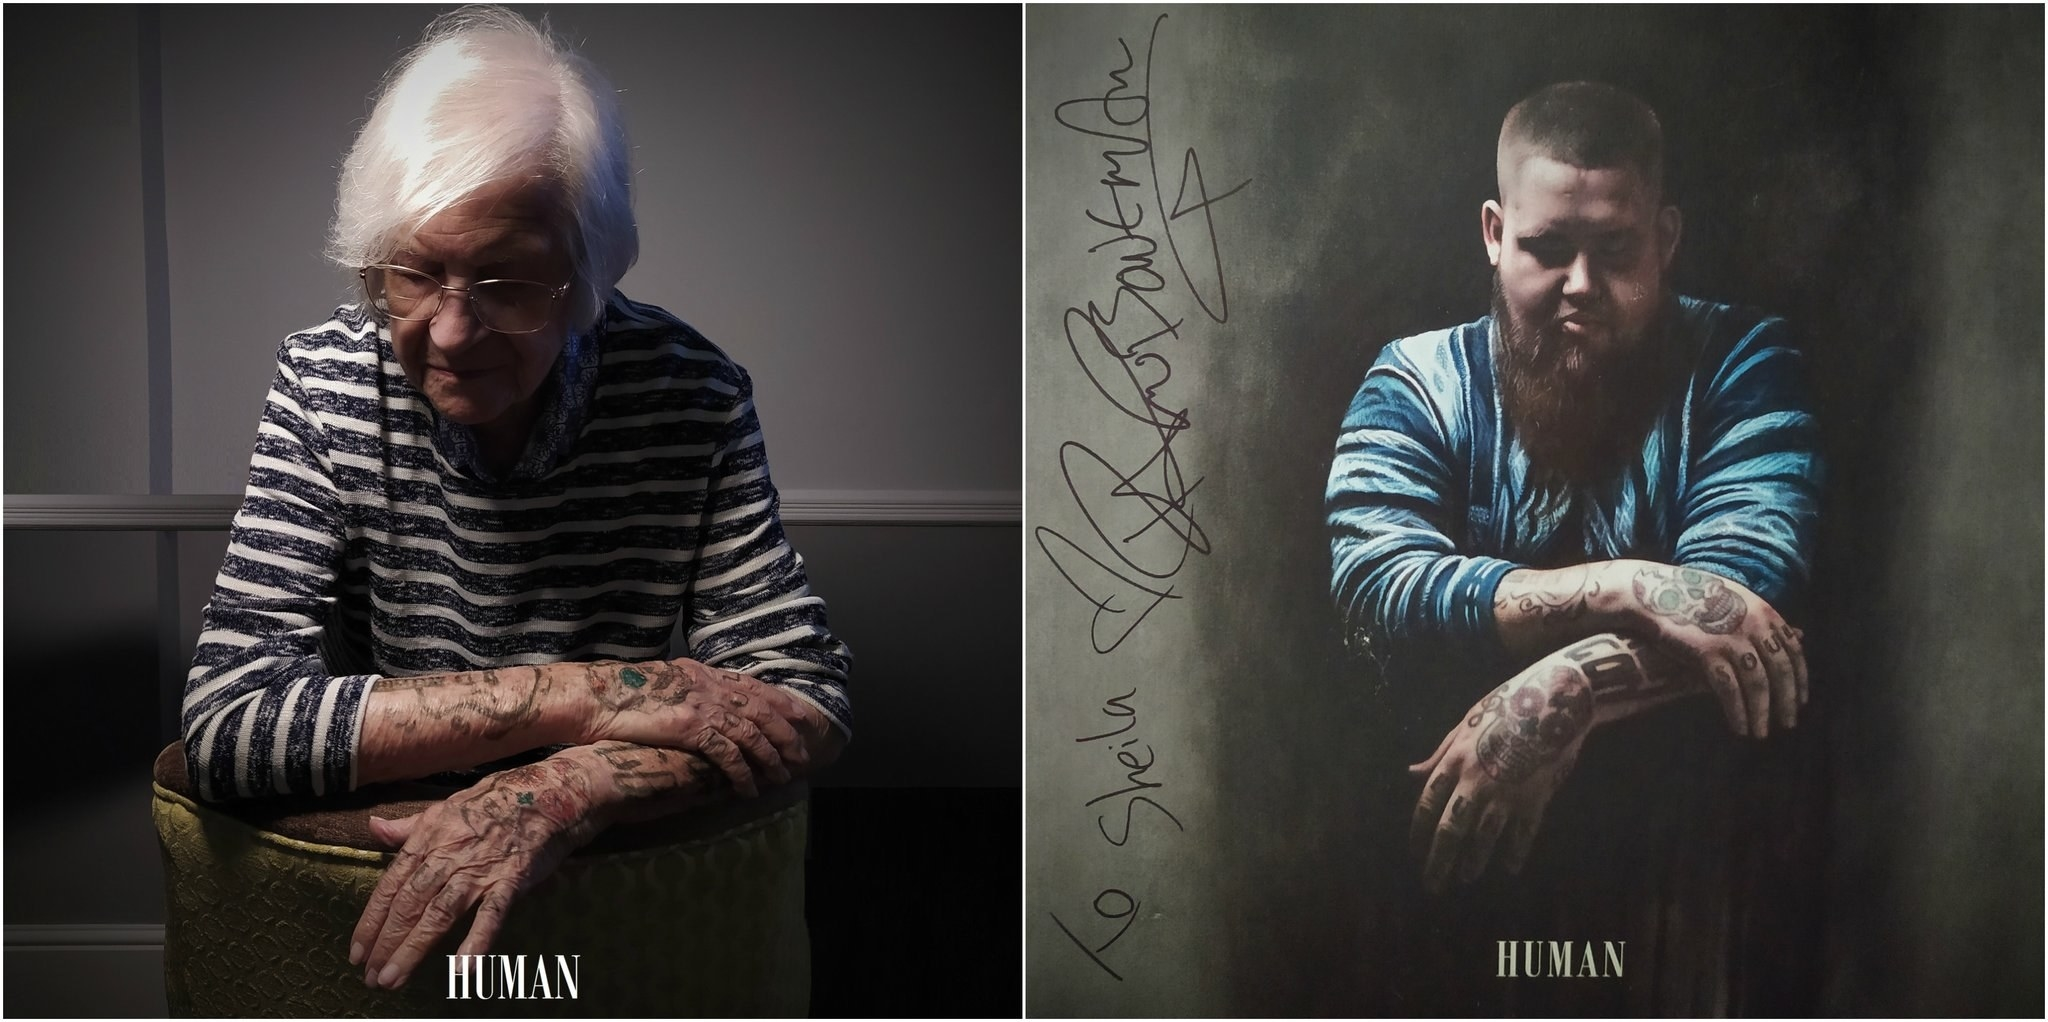 An elderly woman recreating Rag'n'Bone Man's Human album cover